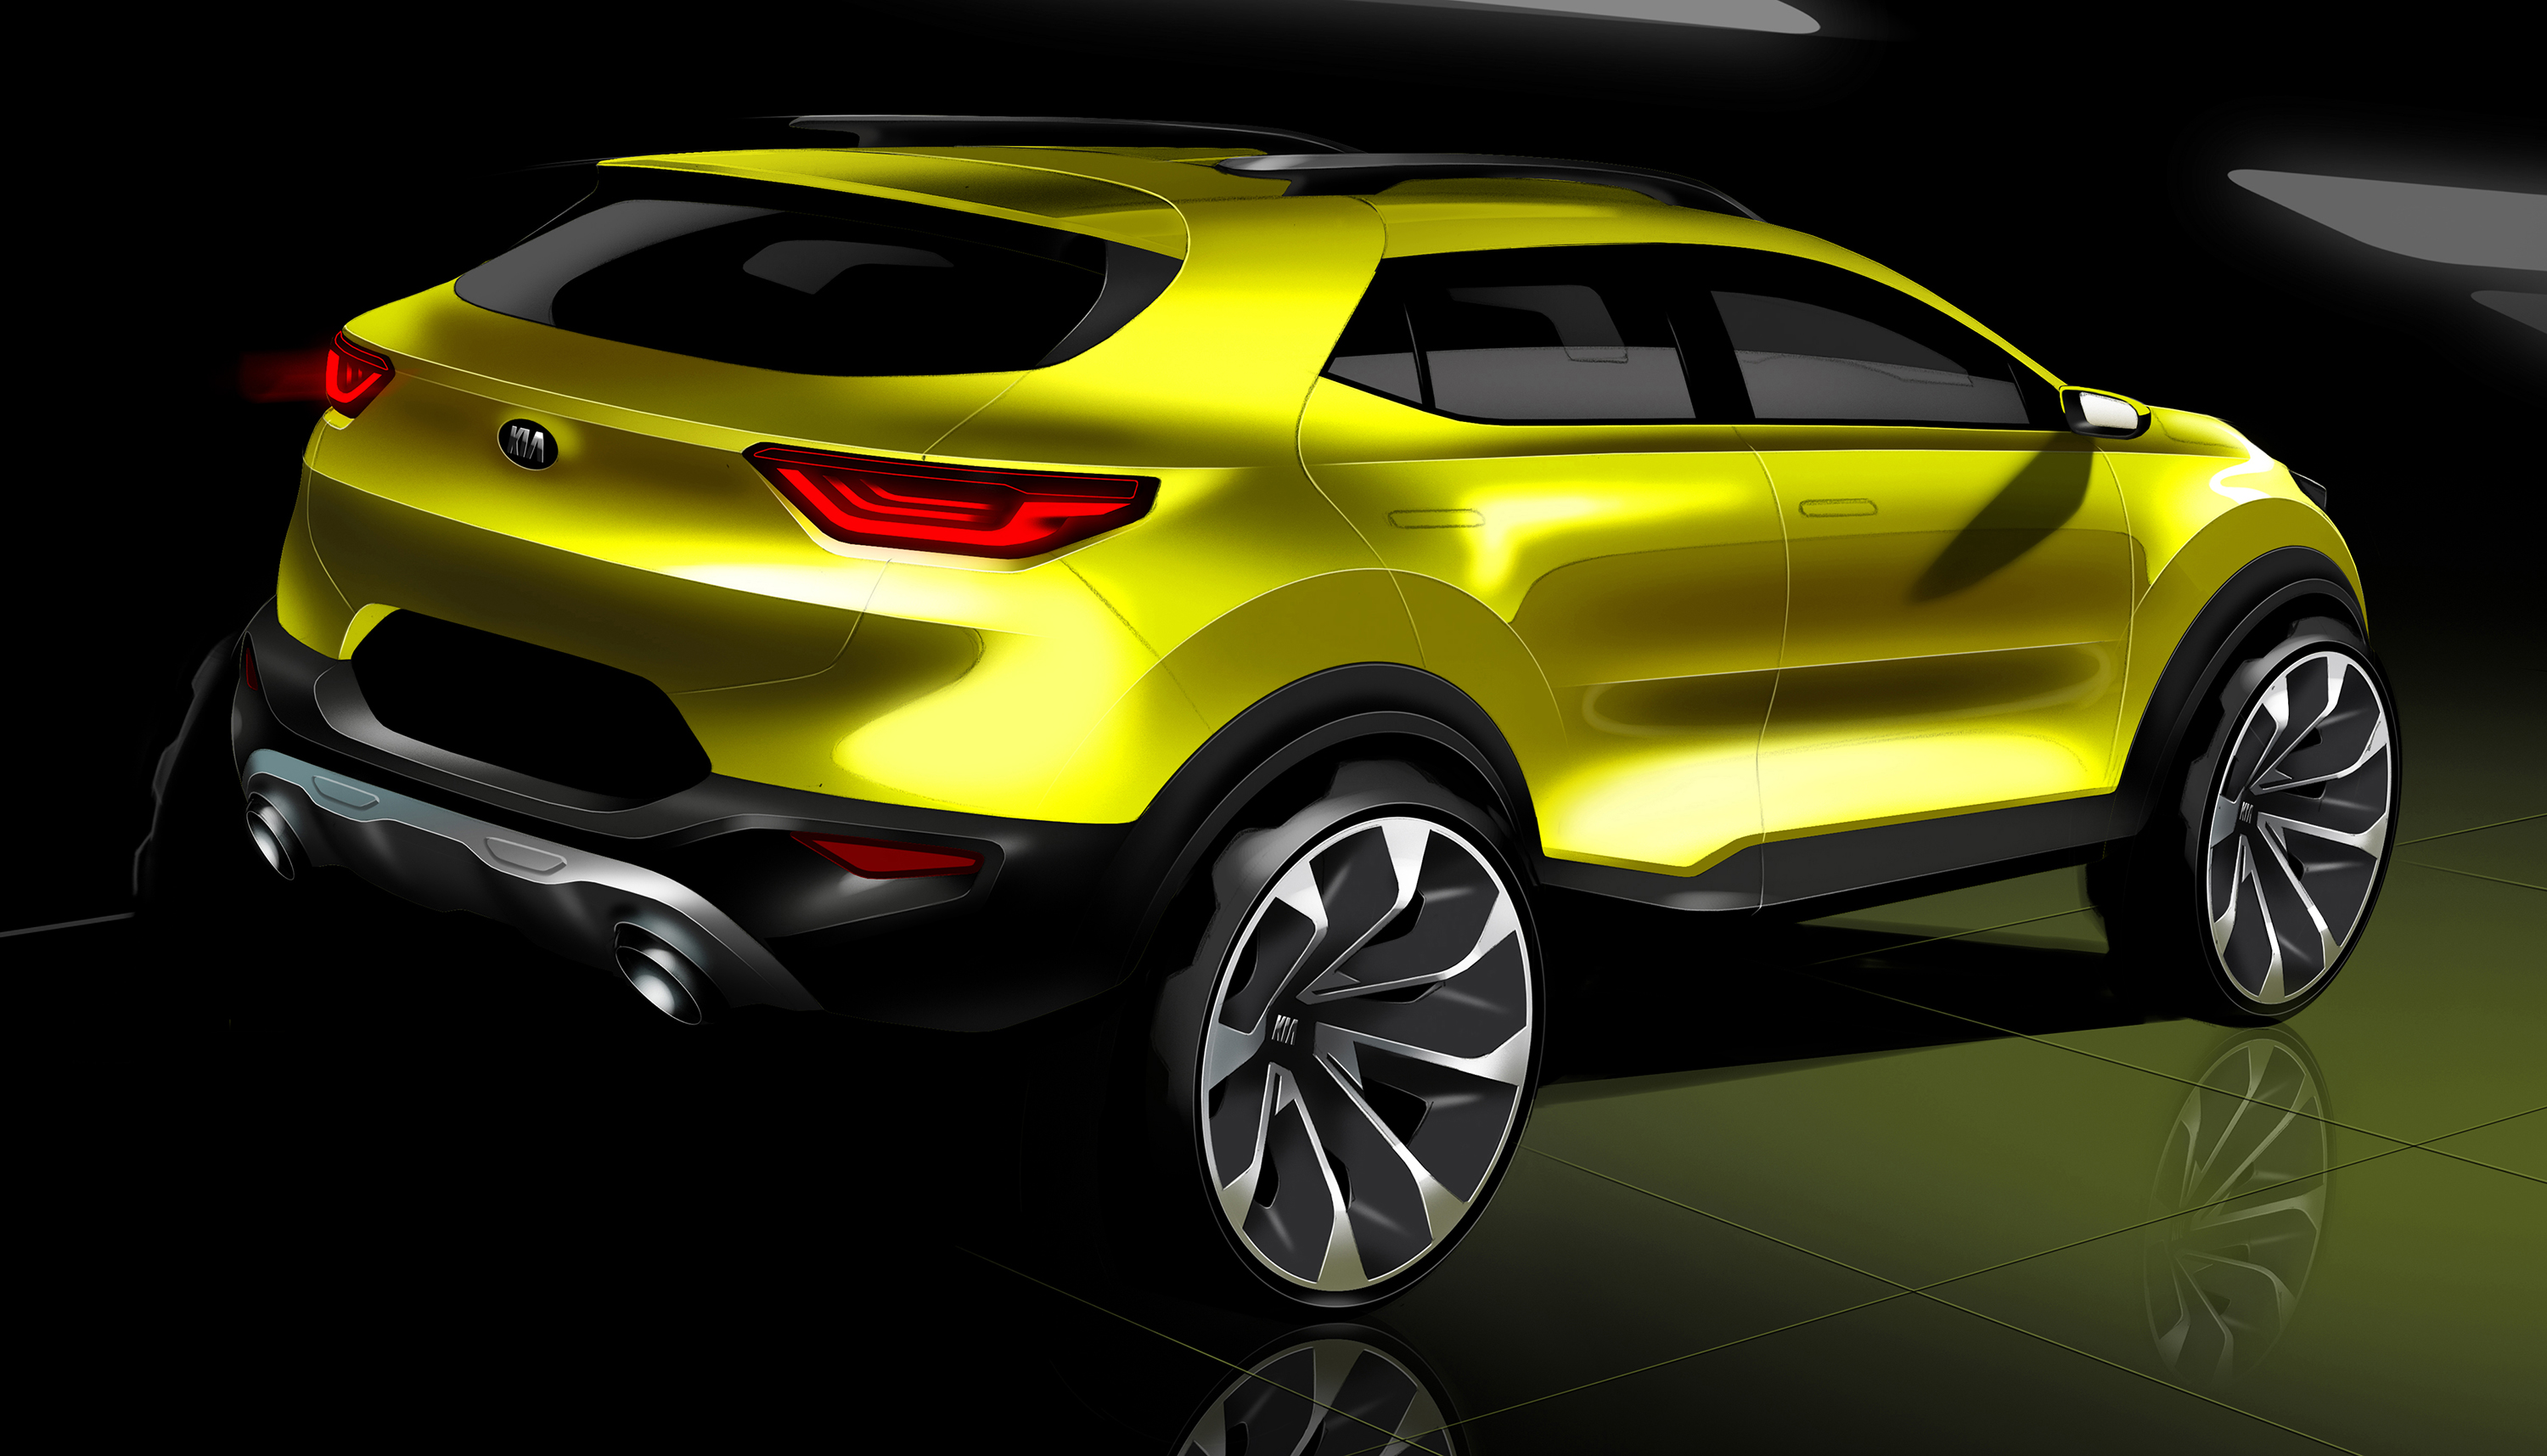 2018 kia stonic previewed in new sketches update photos 1 of 3. Black Bedroom Furniture Sets. Home Design Ideas